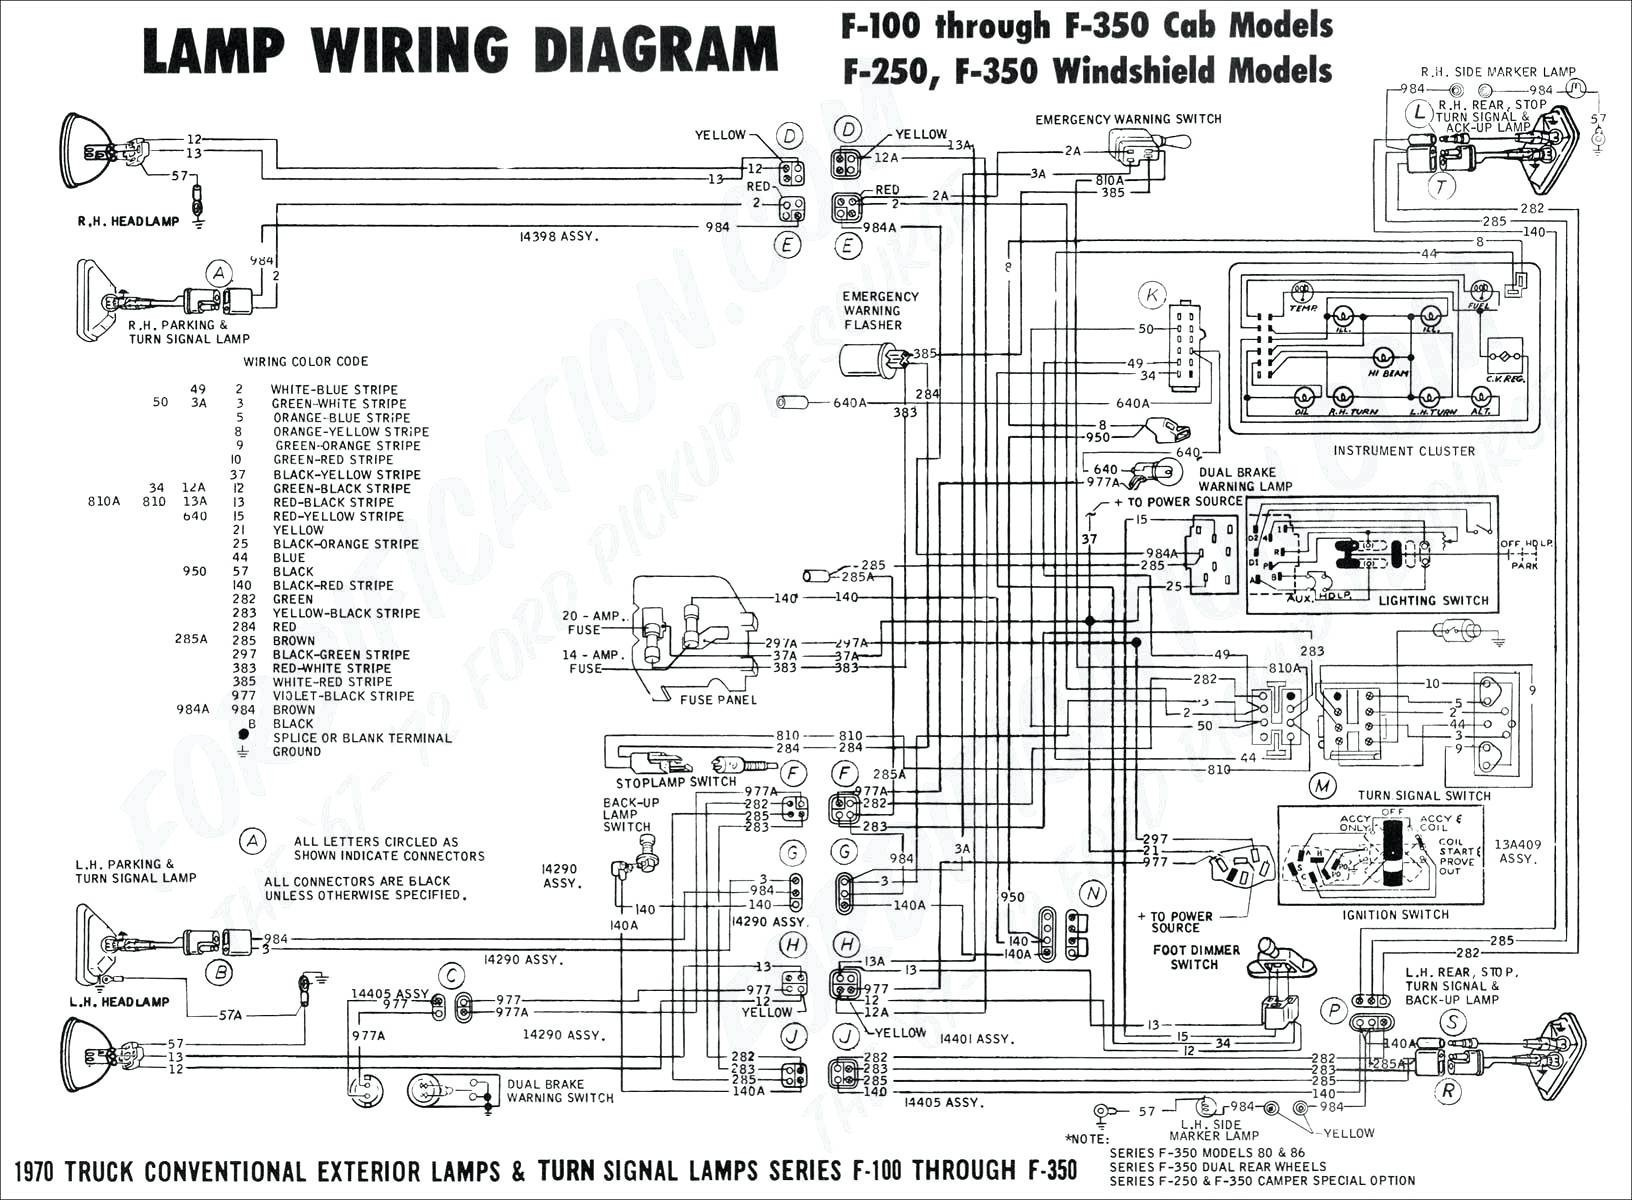 98 toyota Camry Engine Diagram 99 toyota Camry Fuse Box Wiring Diagram Datasource Of 98 toyota Camry Engine Diagram